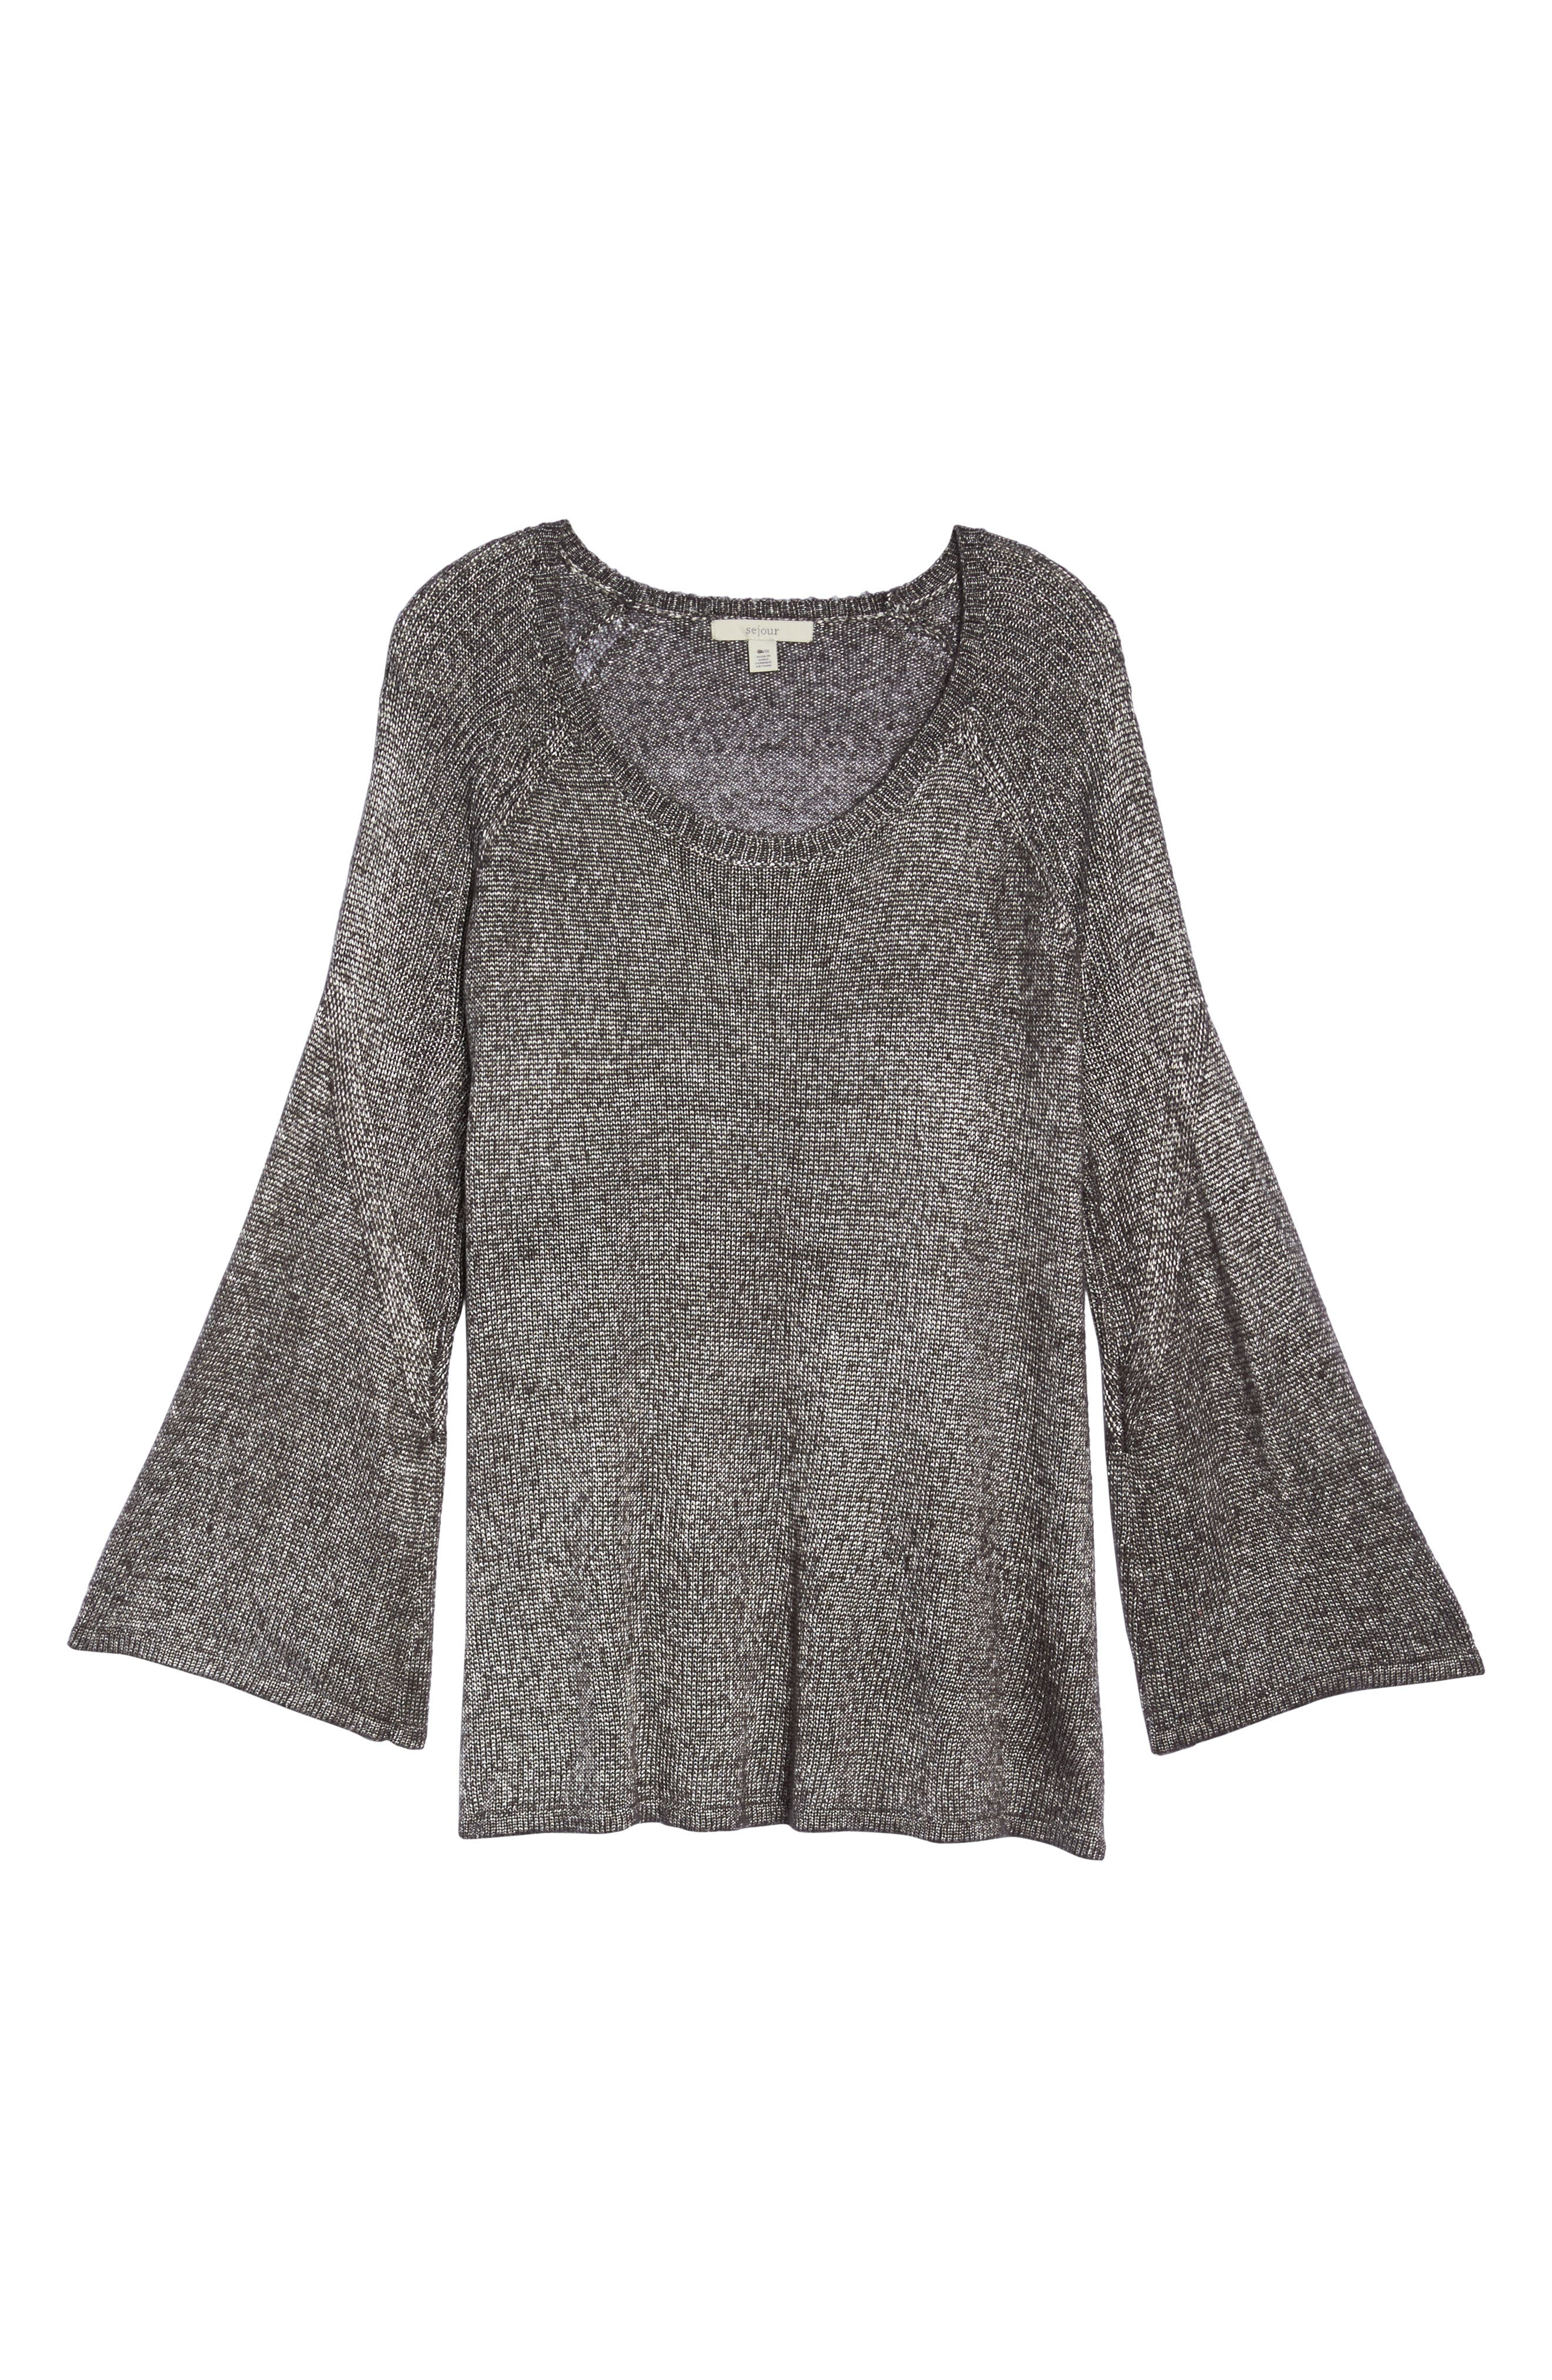 Bell Sleeve Sweater,                             Alternate thumbnail 11, color,